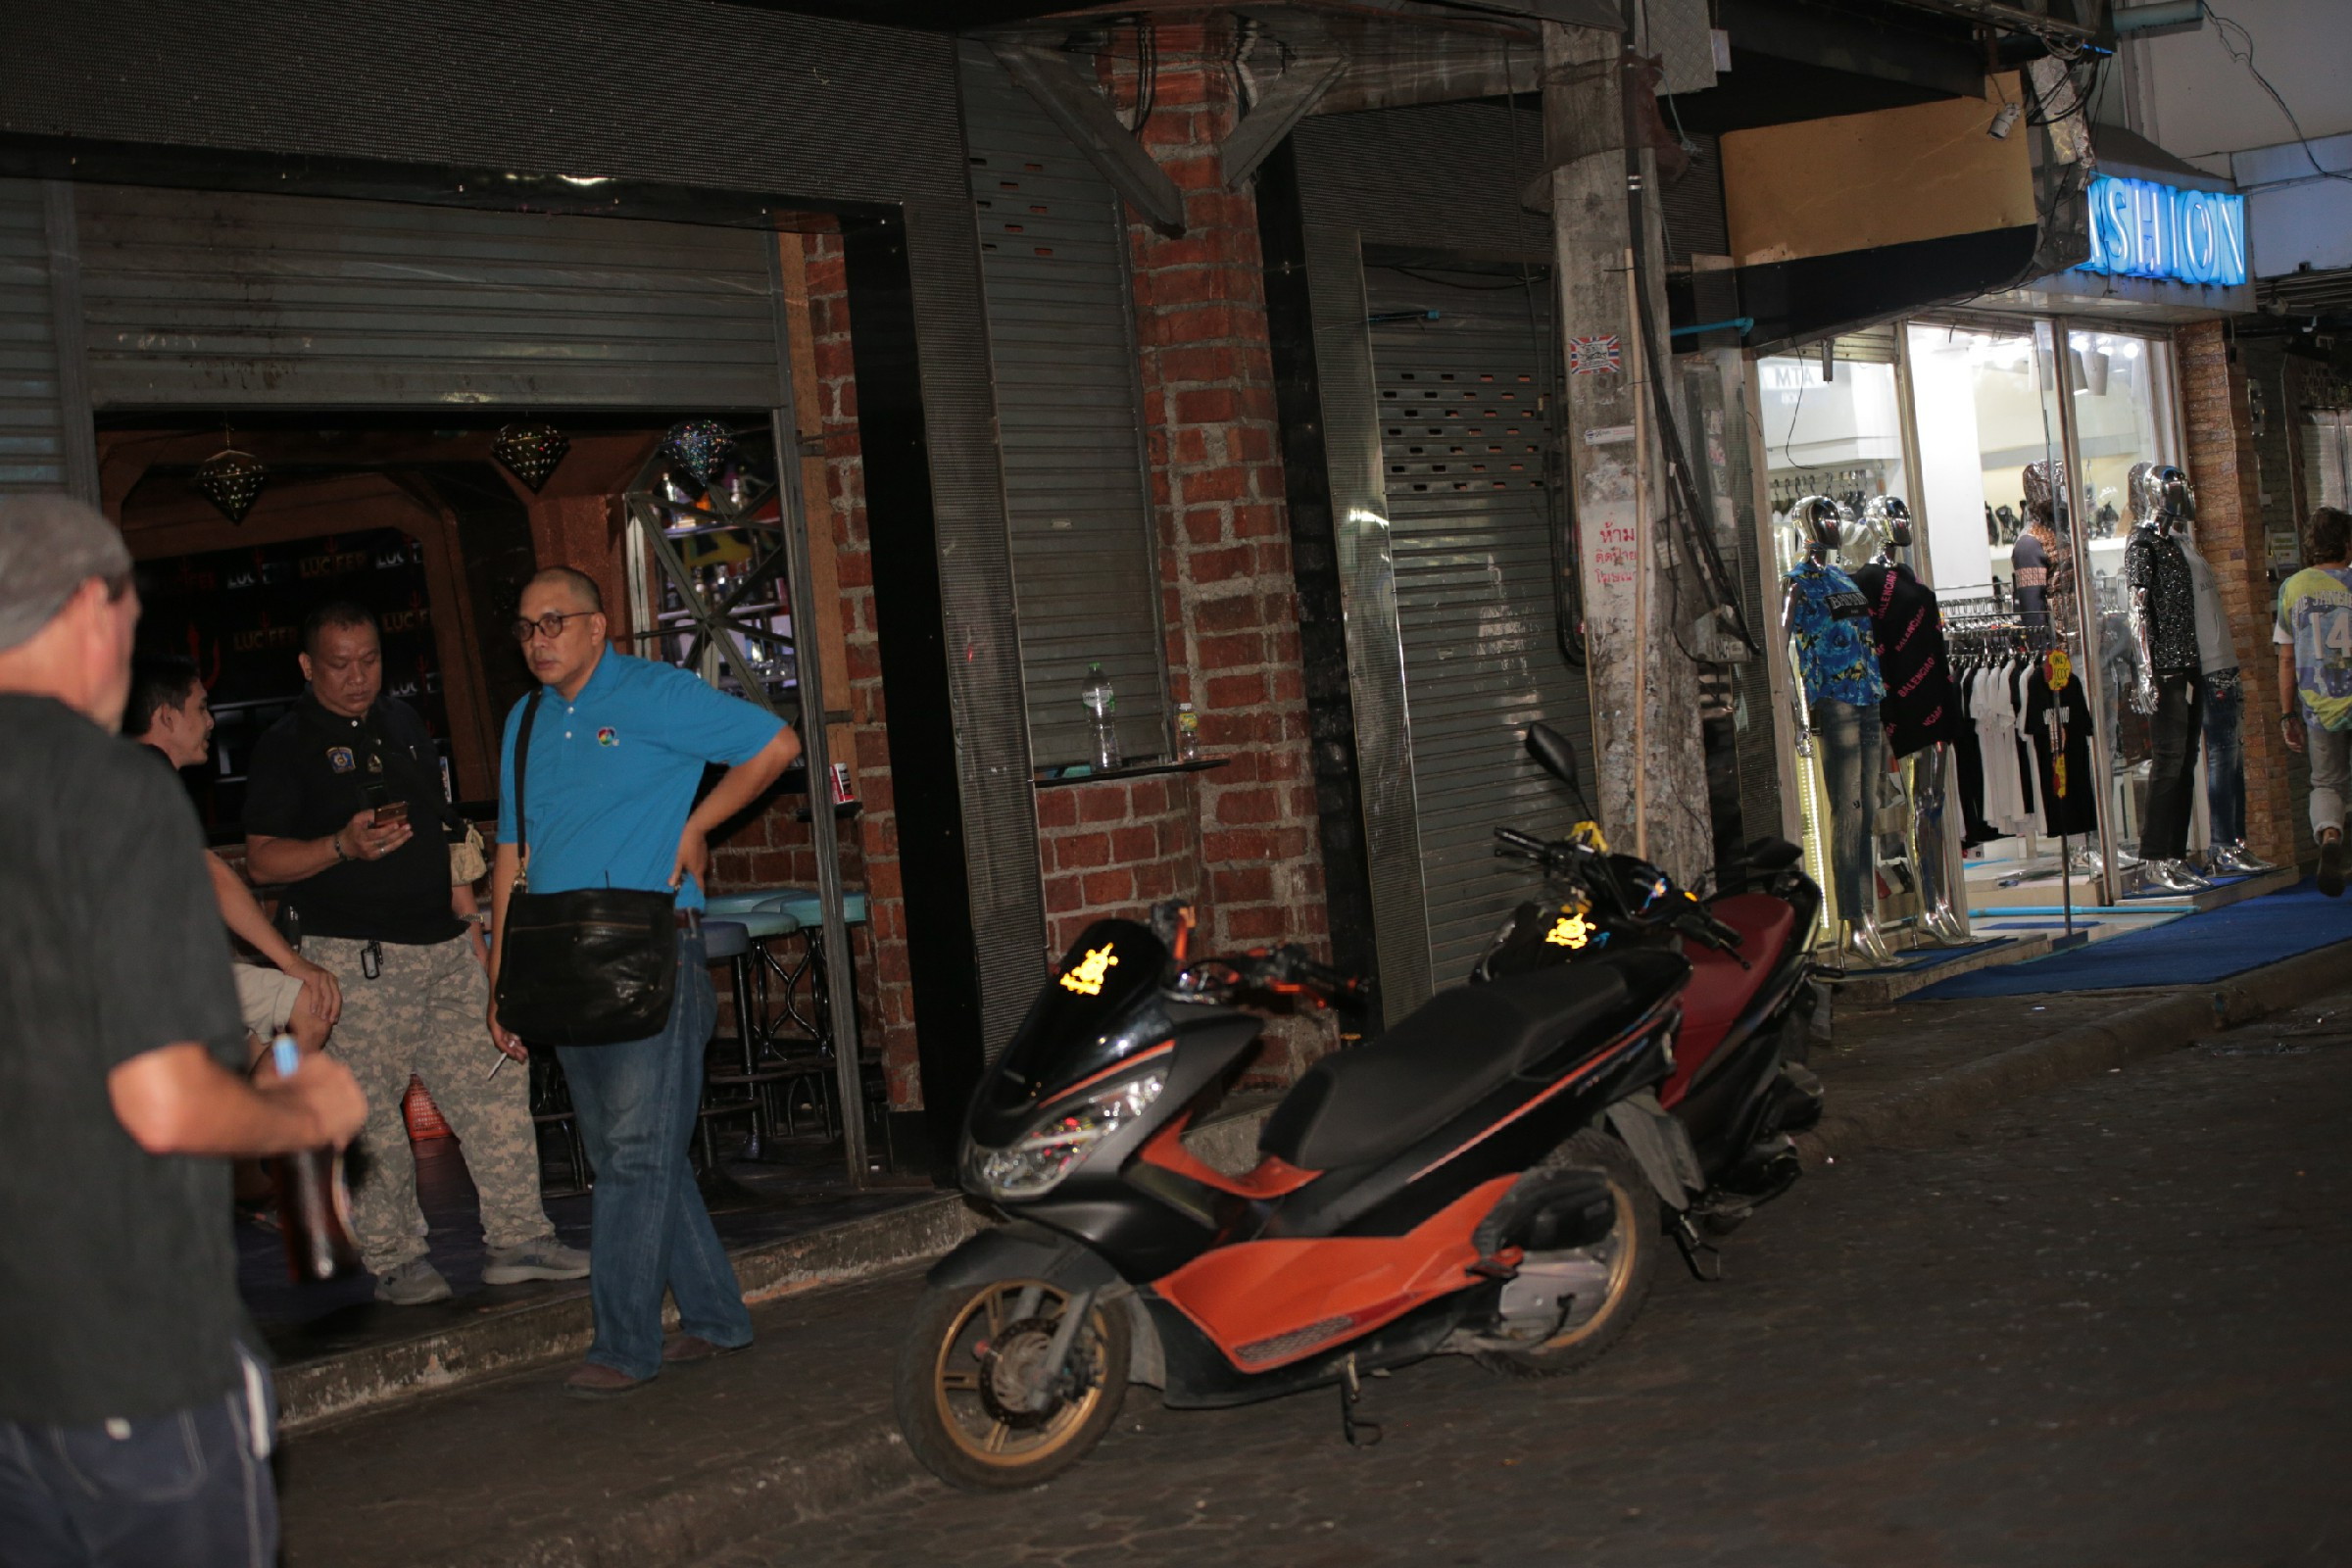 People hang around a closed bar next to a tailor shop open for business on Walking Street.